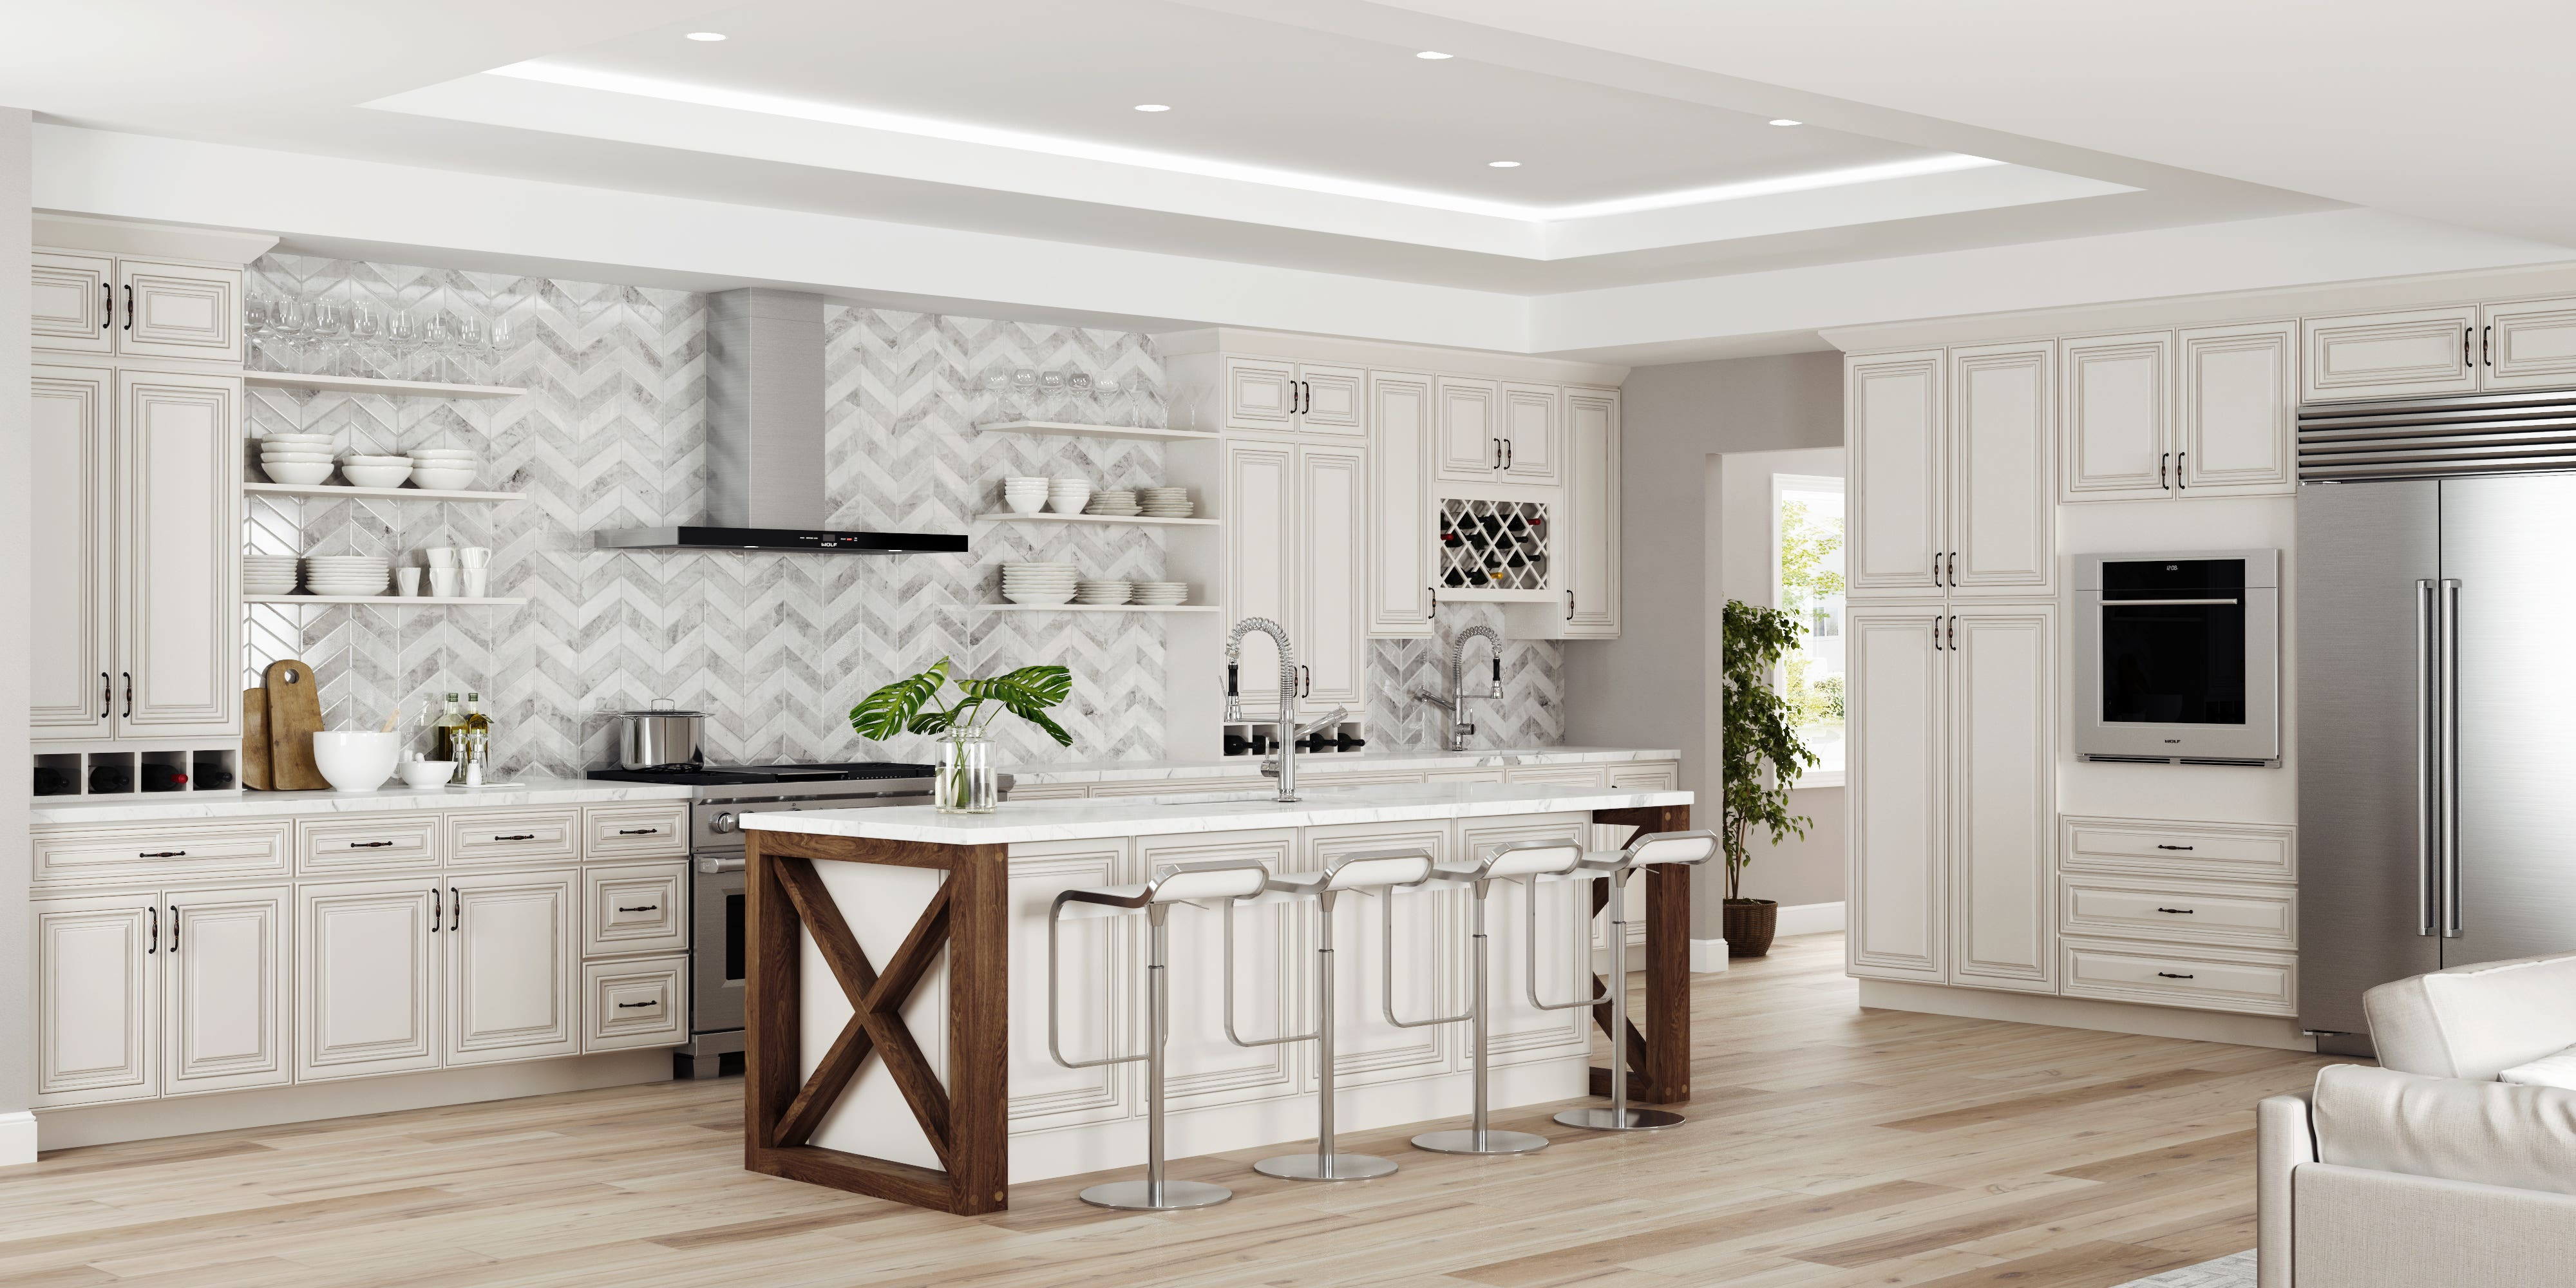 3 Antique White Kitchen Cabinets For A Timeless Kitchen